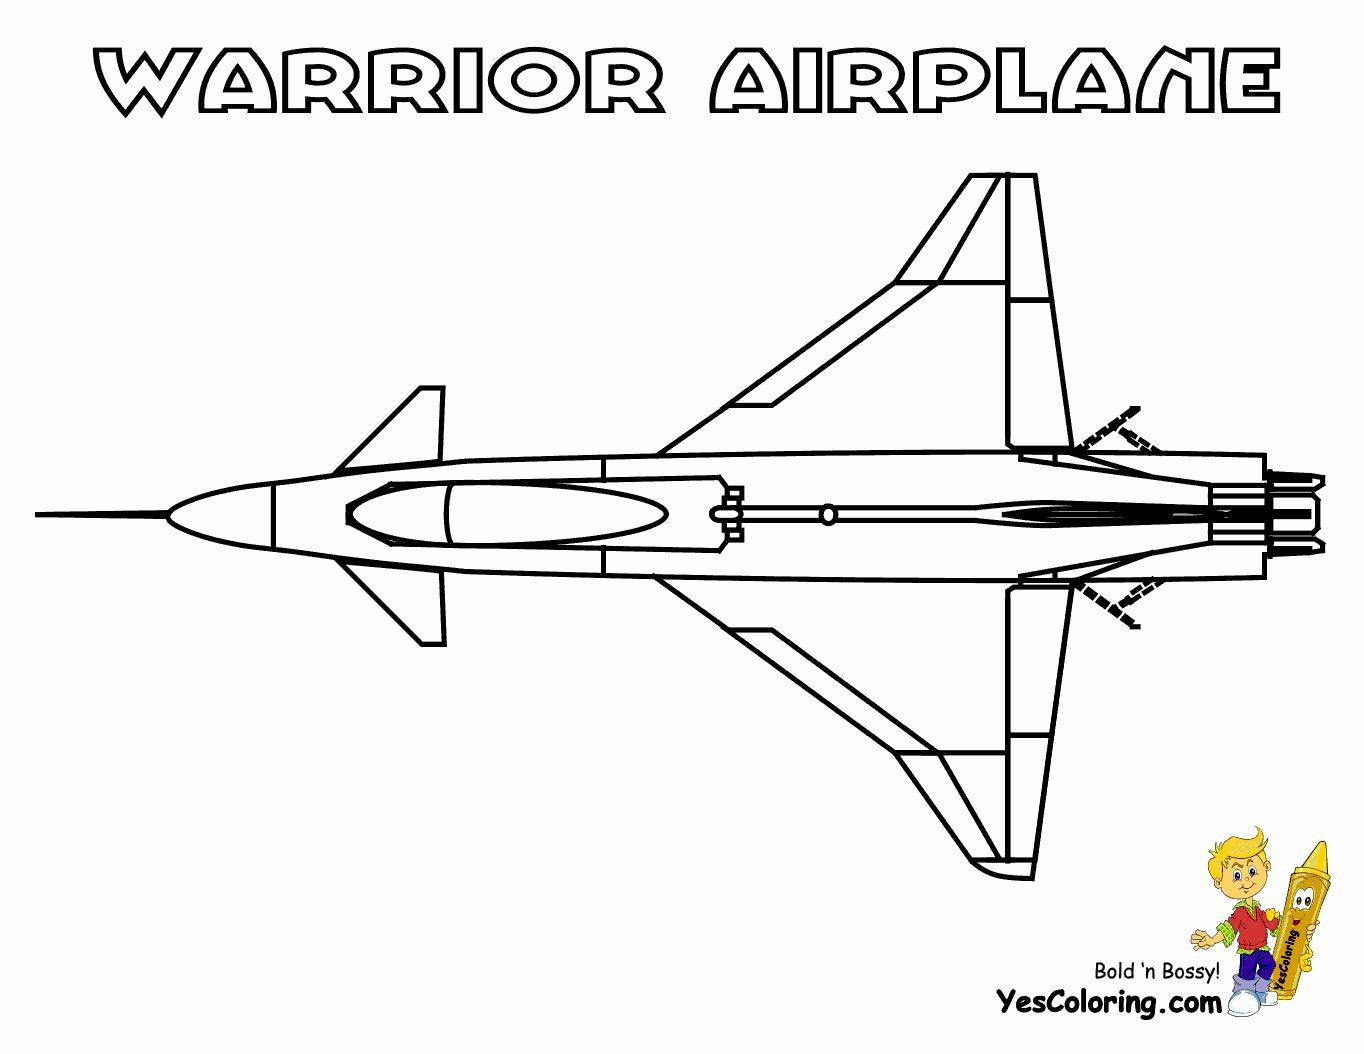 Fighter Jet Coloring Page Inspirational Ferocious Fighter Jet Planes Coloring Jet Planes Free Fighter Jets Coloring Pages Coloring Pages For Kids